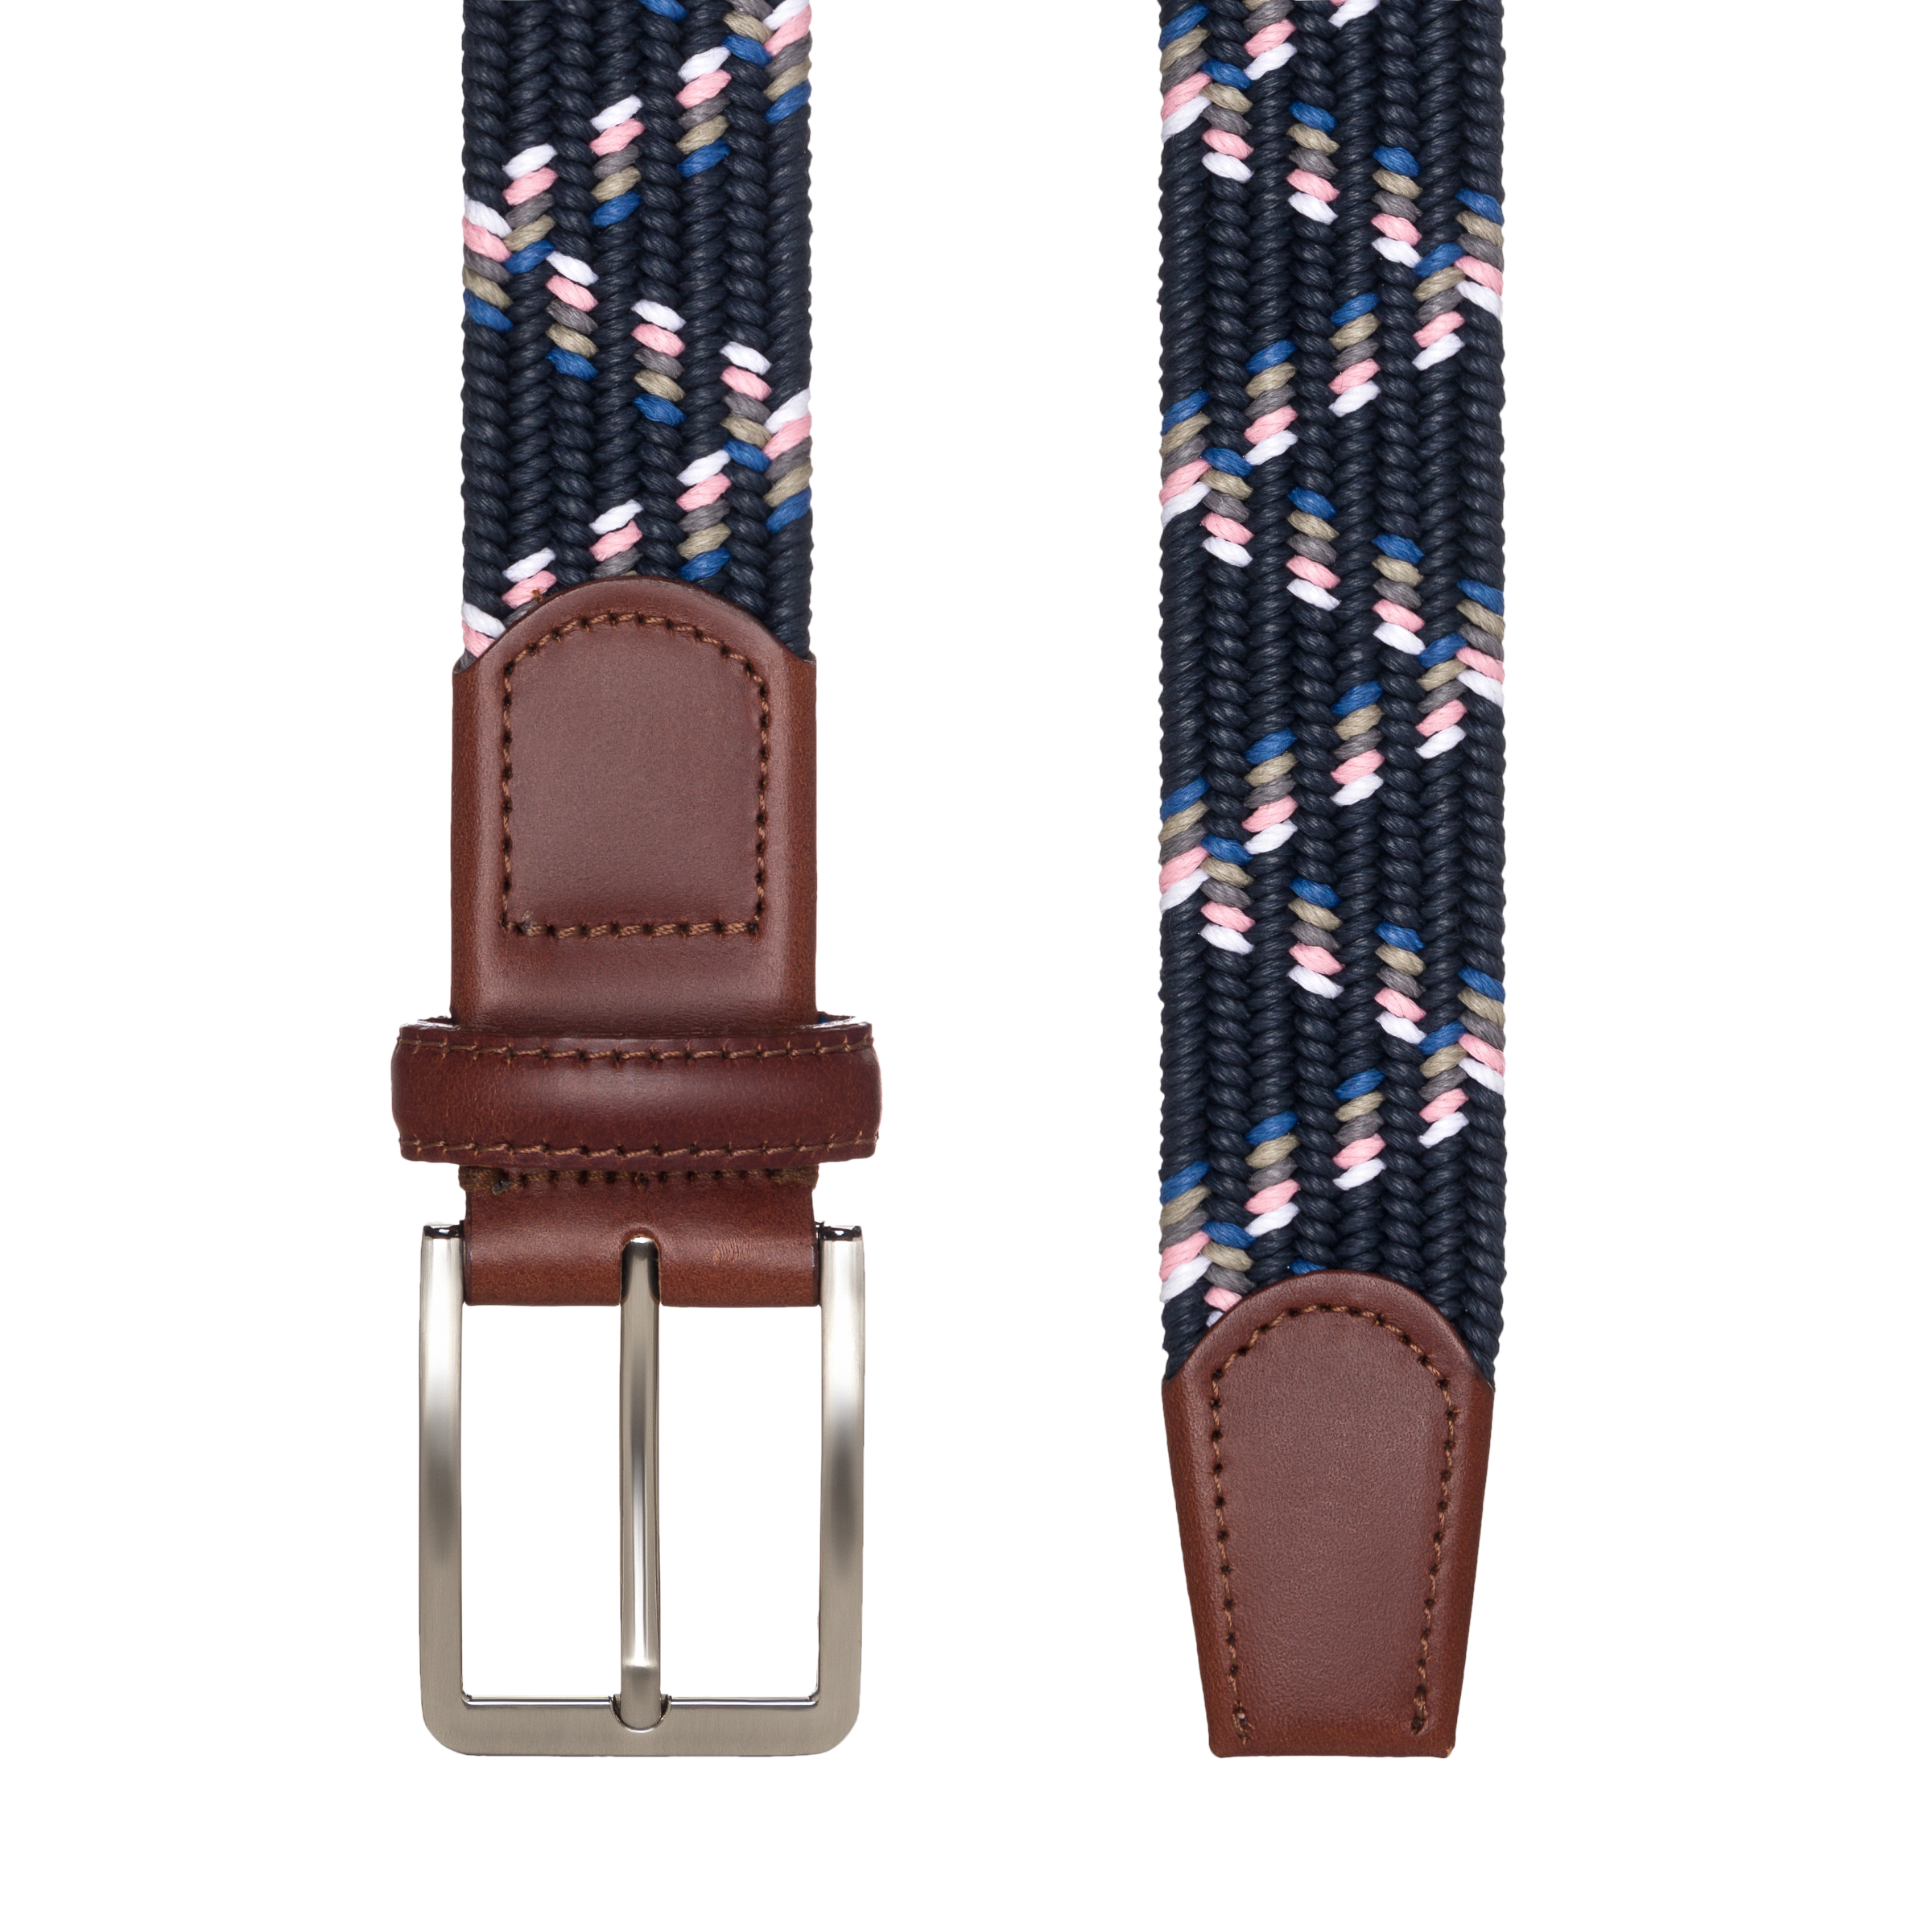 Belts product photography